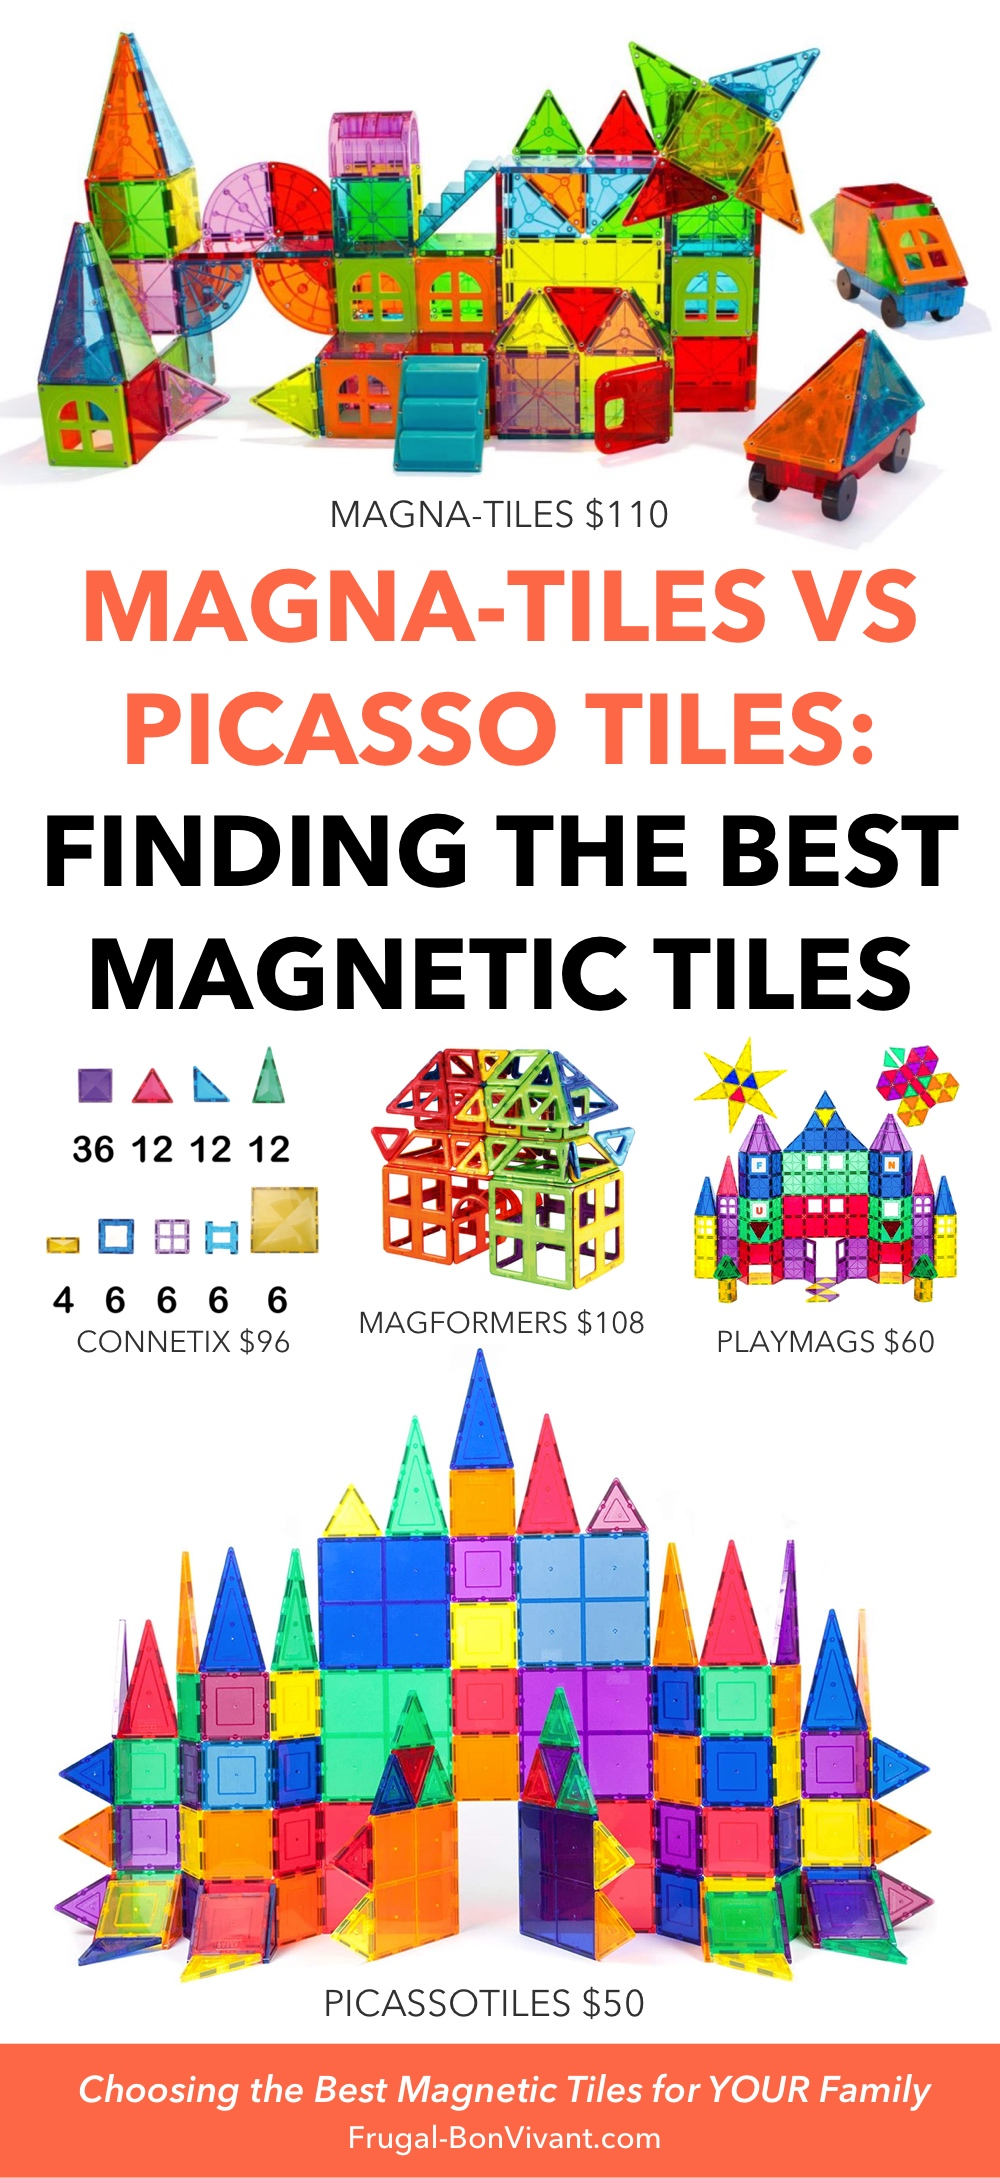 Magna Tiles vs Picasso Tiles - finding the best magnetic tiles